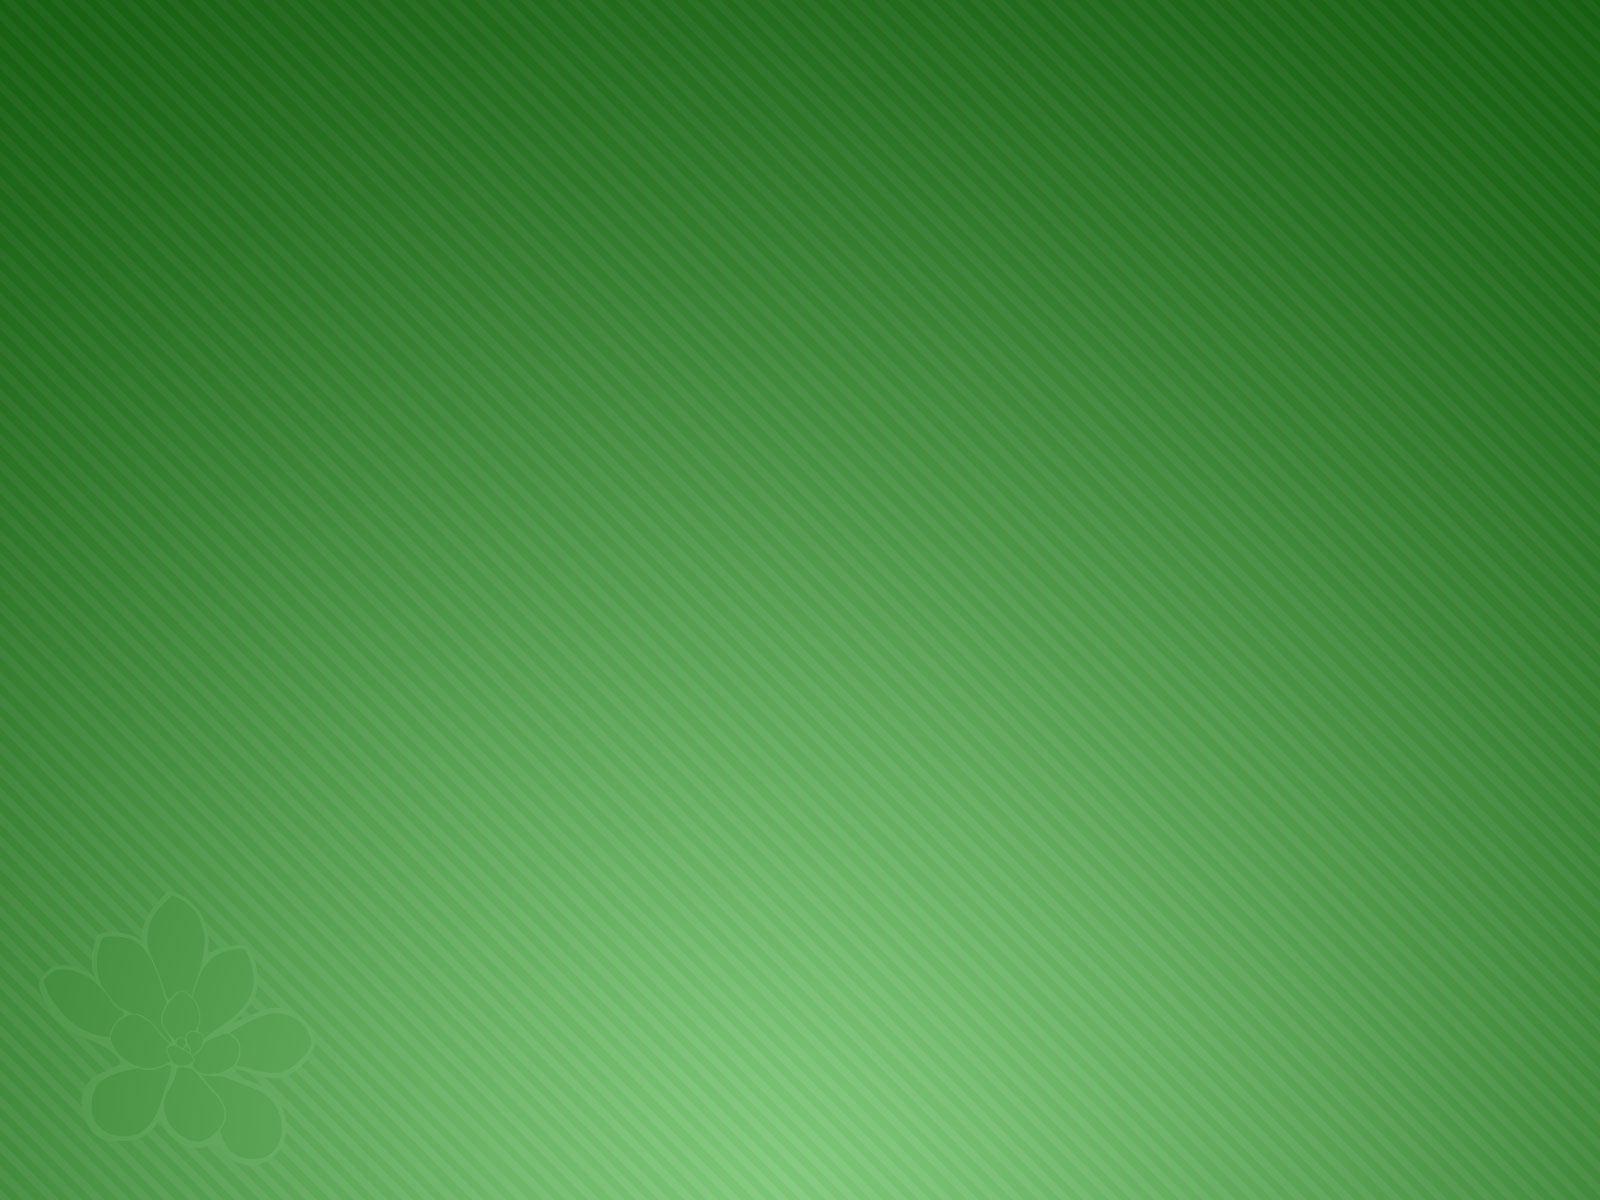 Wallpapers for Gt Pale Light Green Background 1600x1200px